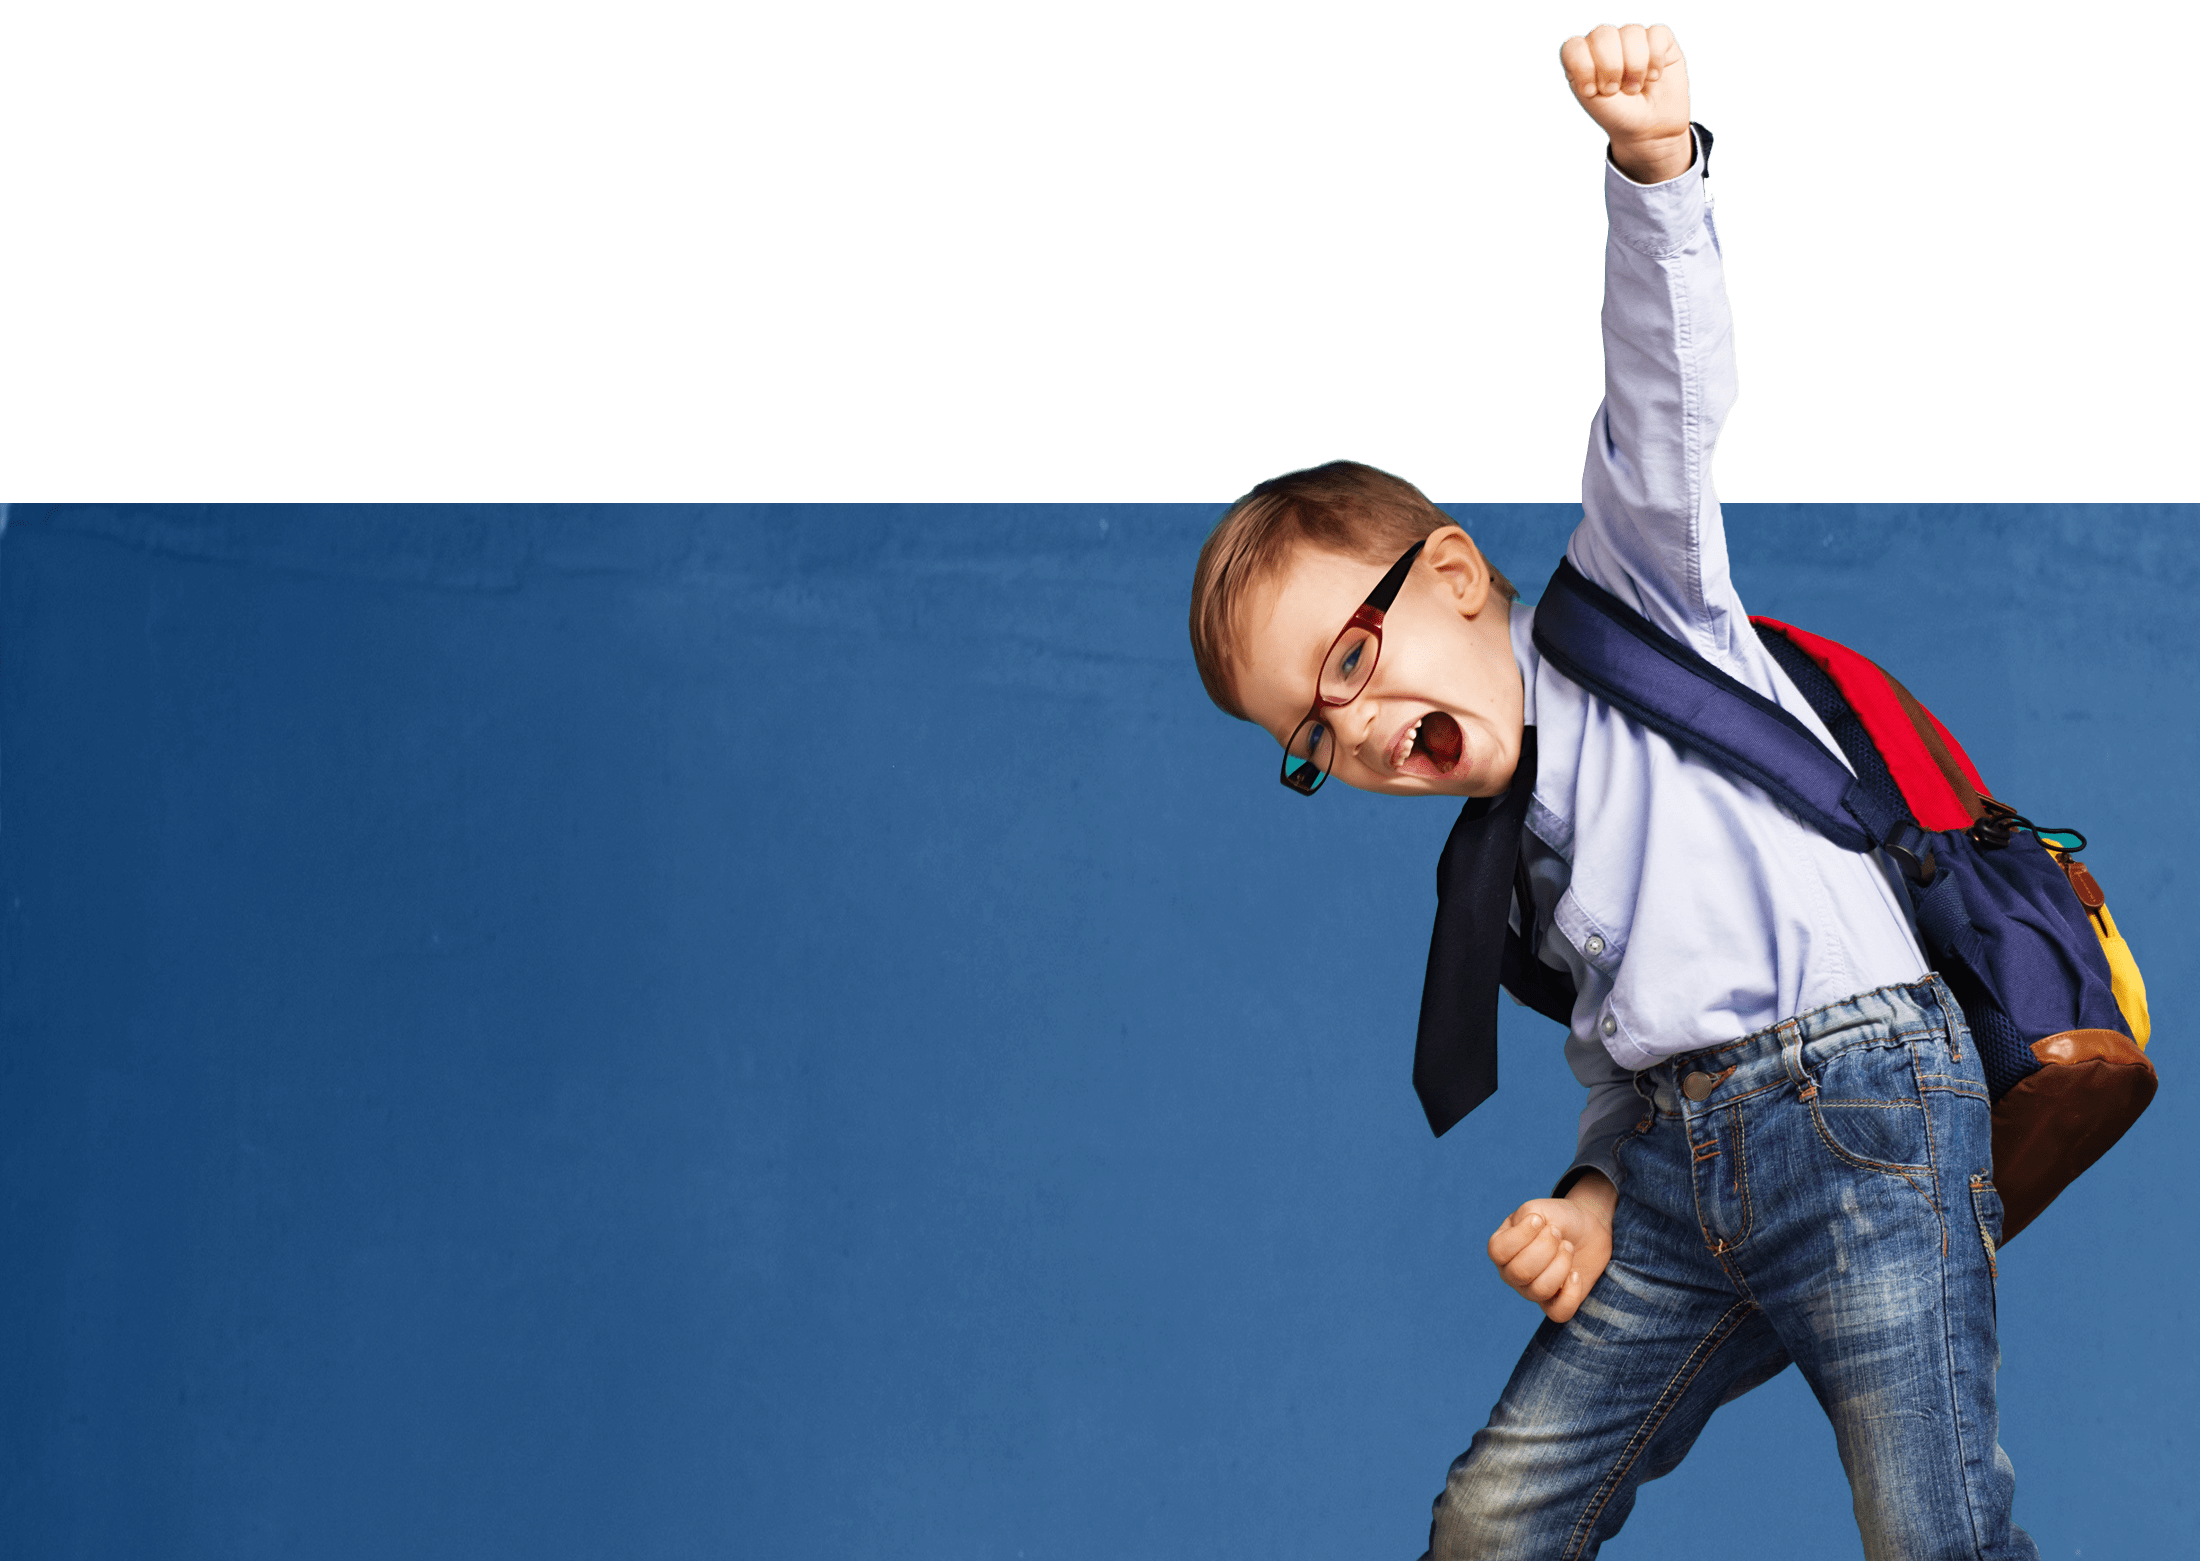 Background photo of boy with arm raised